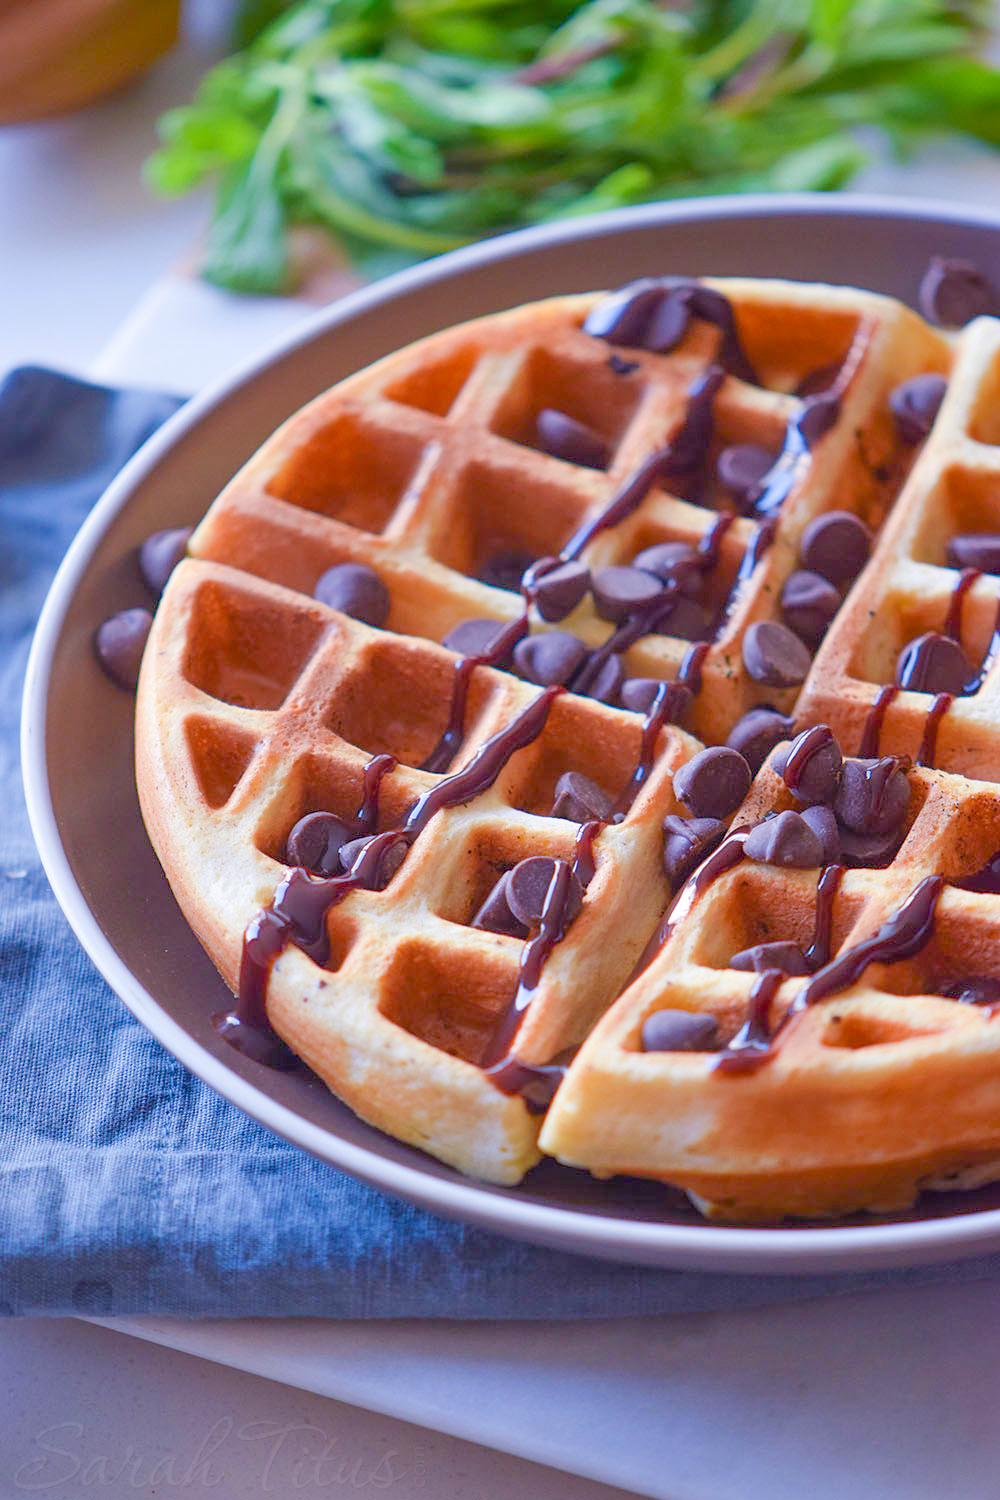 Delicious looking crispy lightly browned waffle covered with drizzled chocolate and chocolate chips